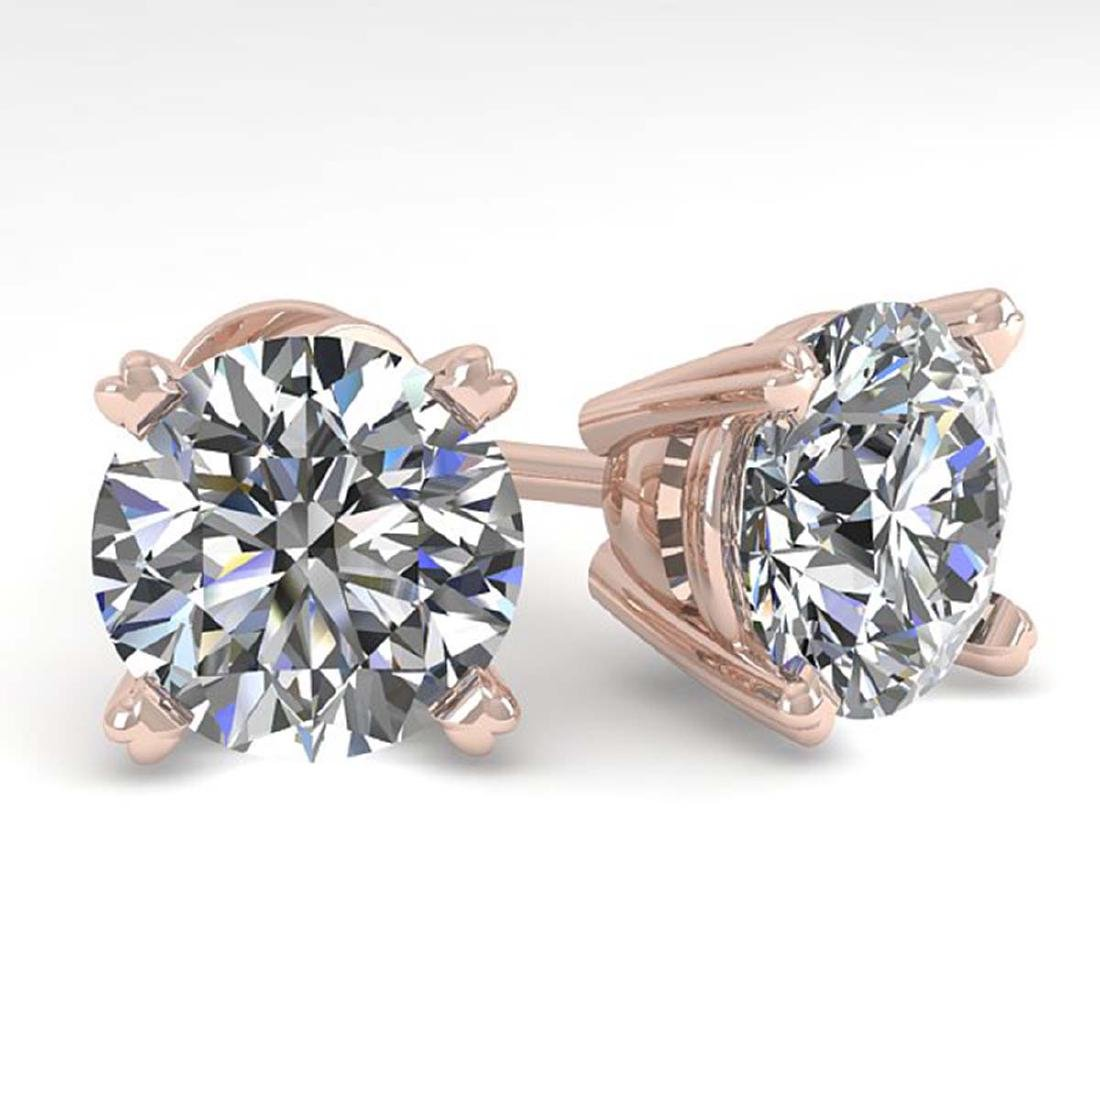 4 CTW Certified VS/SI Diamond Stud Earrings 14K Rose